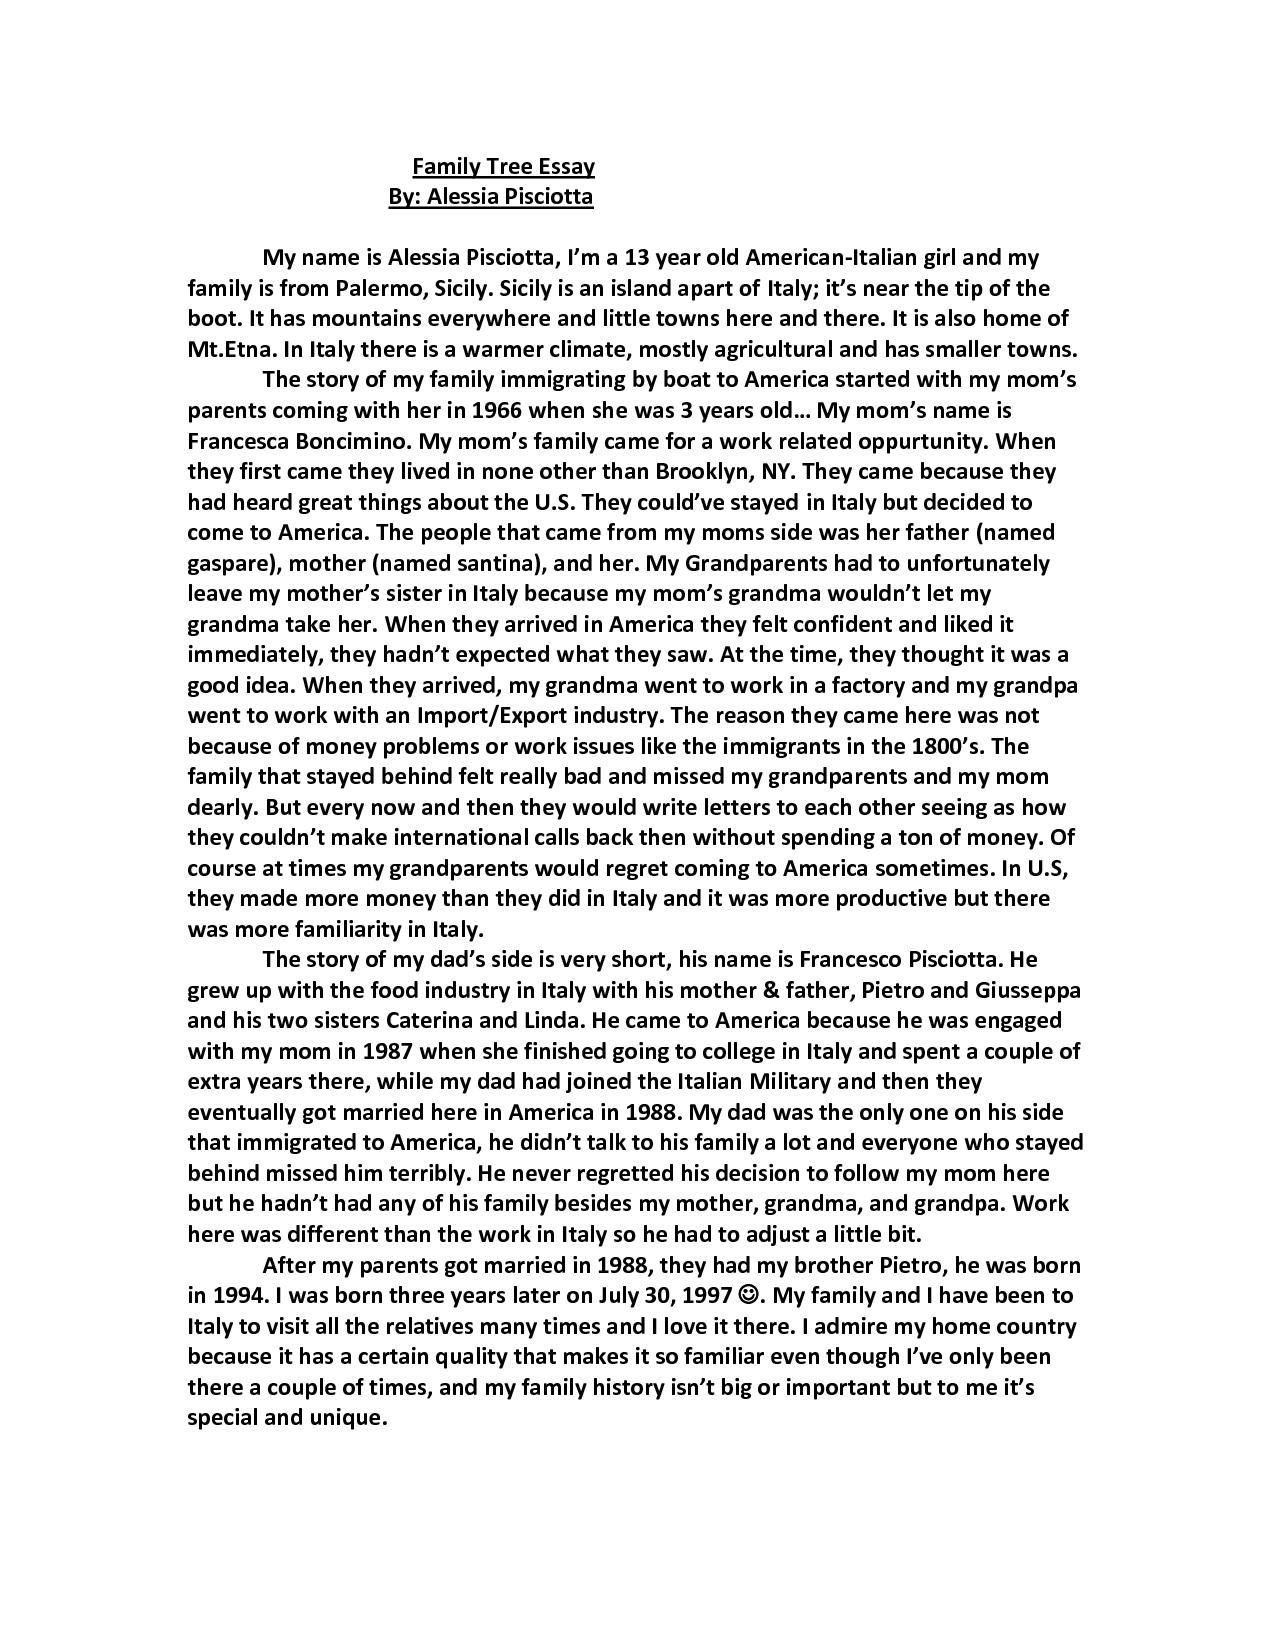 003 Essay Example My Family Tree How To Write An About Writing In English Po4ax Our I Love For Class Singular Narrative Ideas Conclusion Life Topics Full